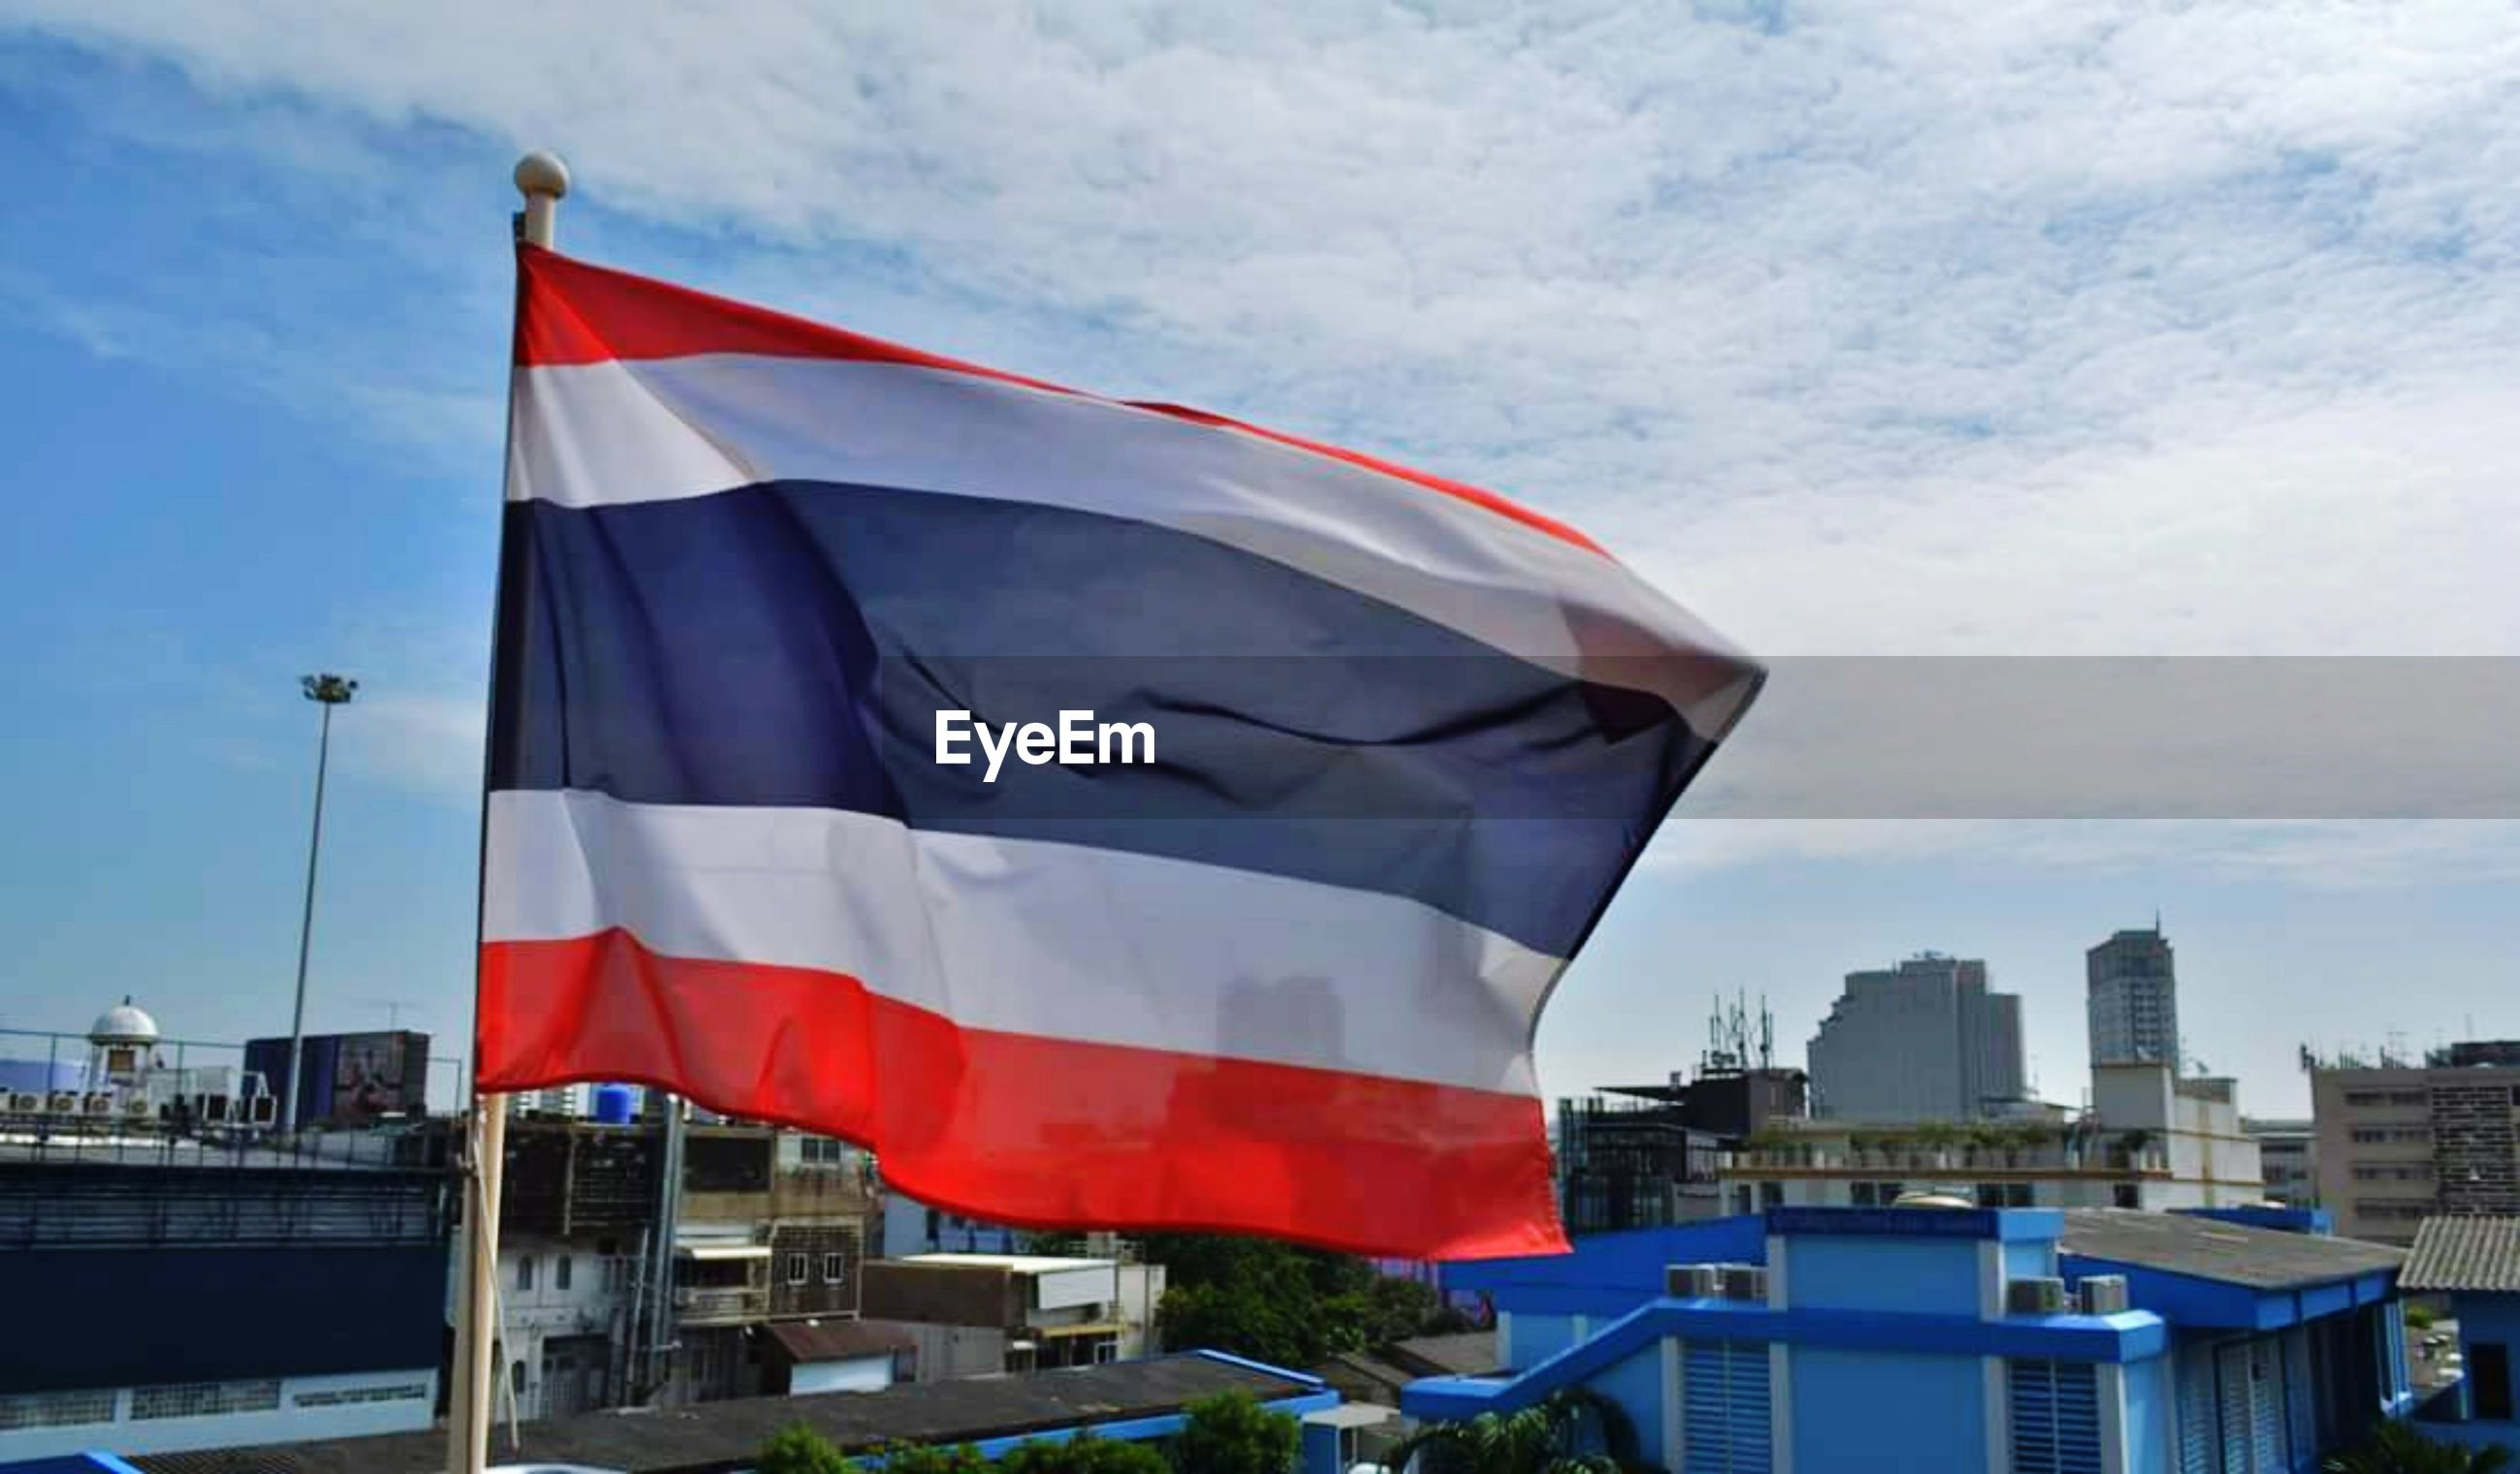 Flag in city against cloudy sky